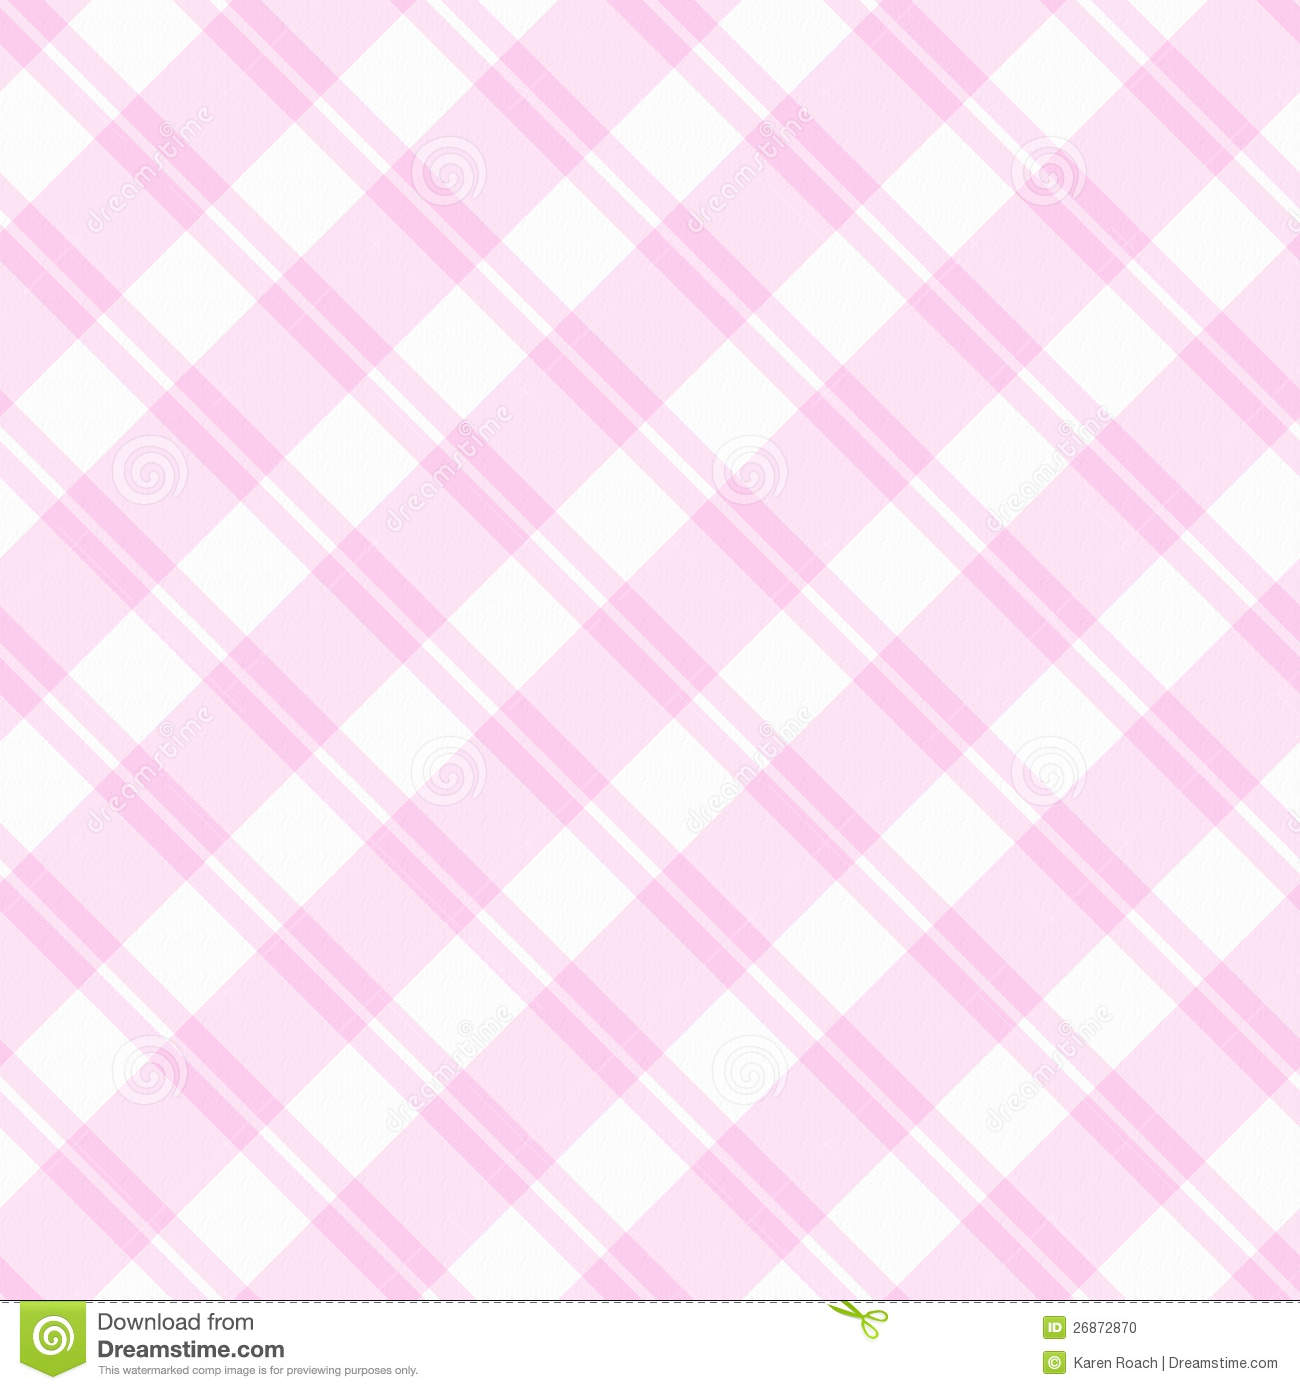 Light Pink Plaid Fabric Background Stock Photo Image Of Old Weave 26872870